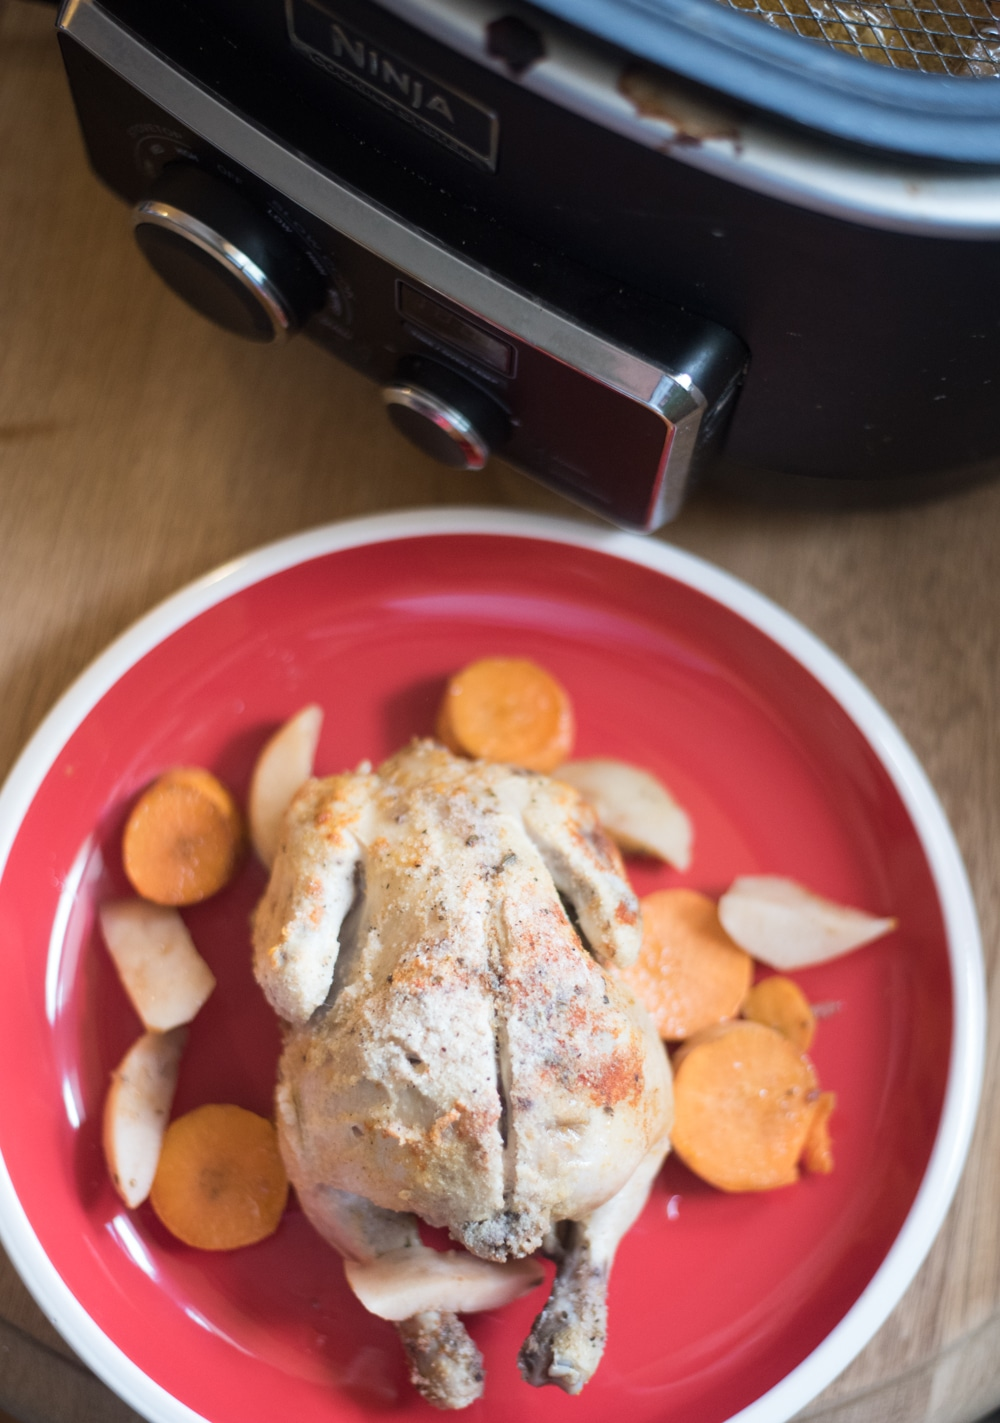 A plate of food on a table, with Slow cooker and Chicken